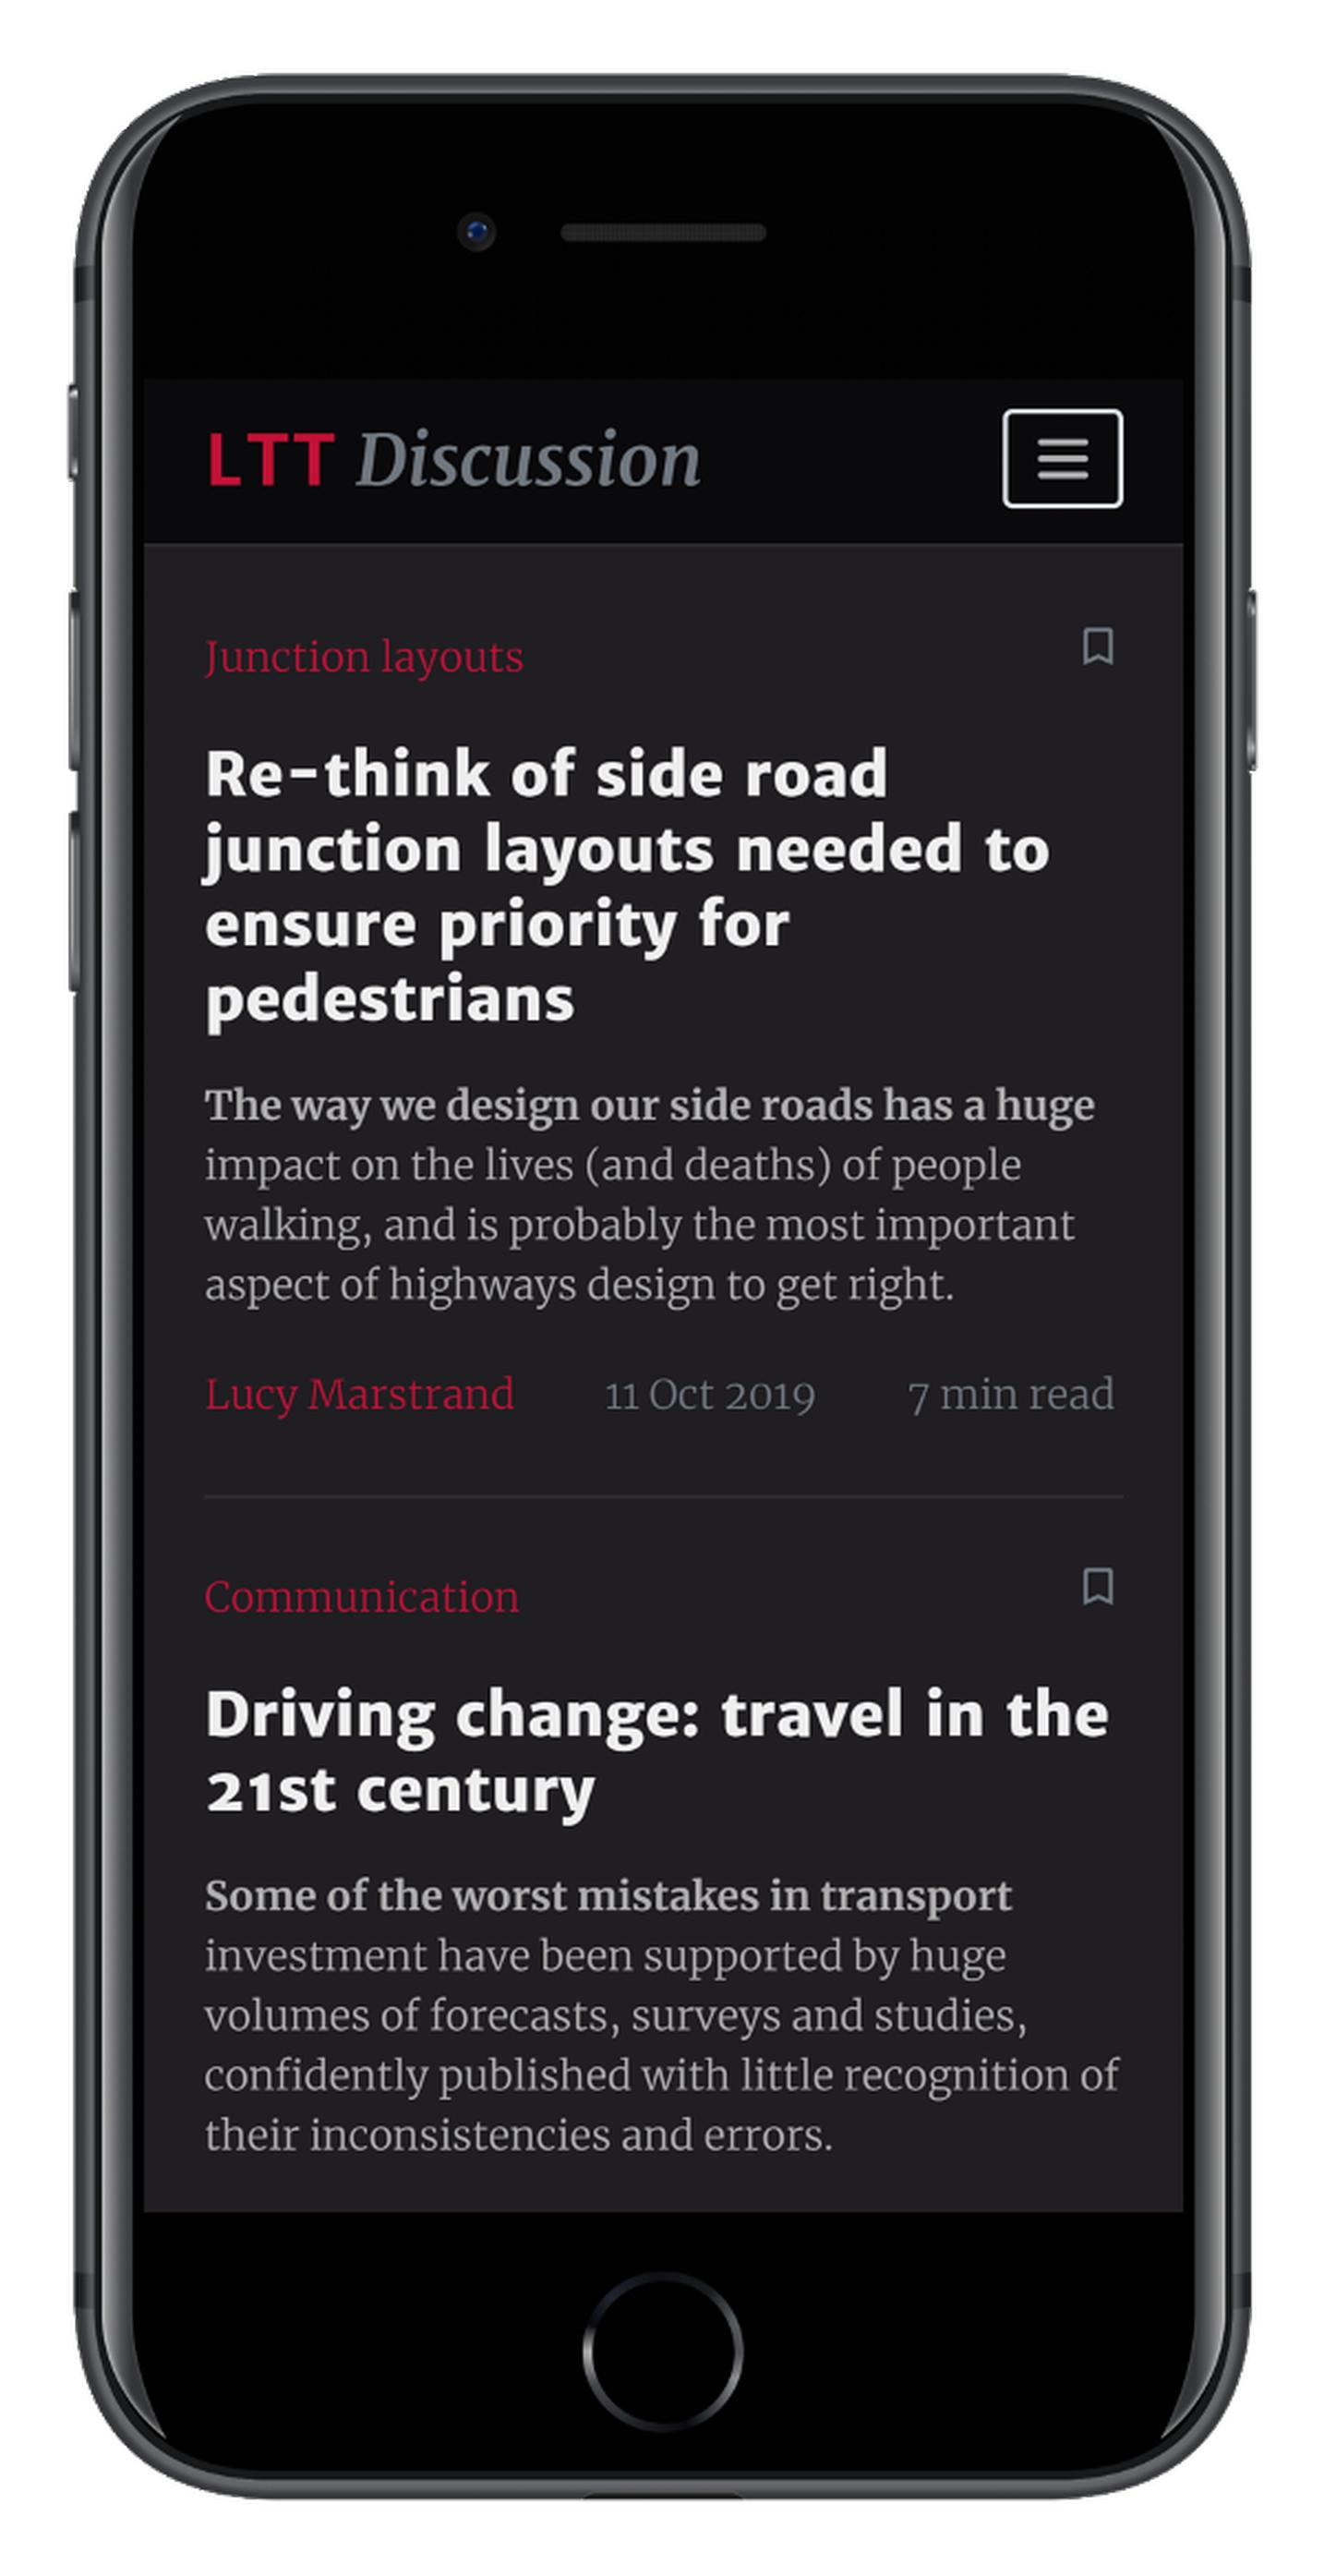 Also coming soon…